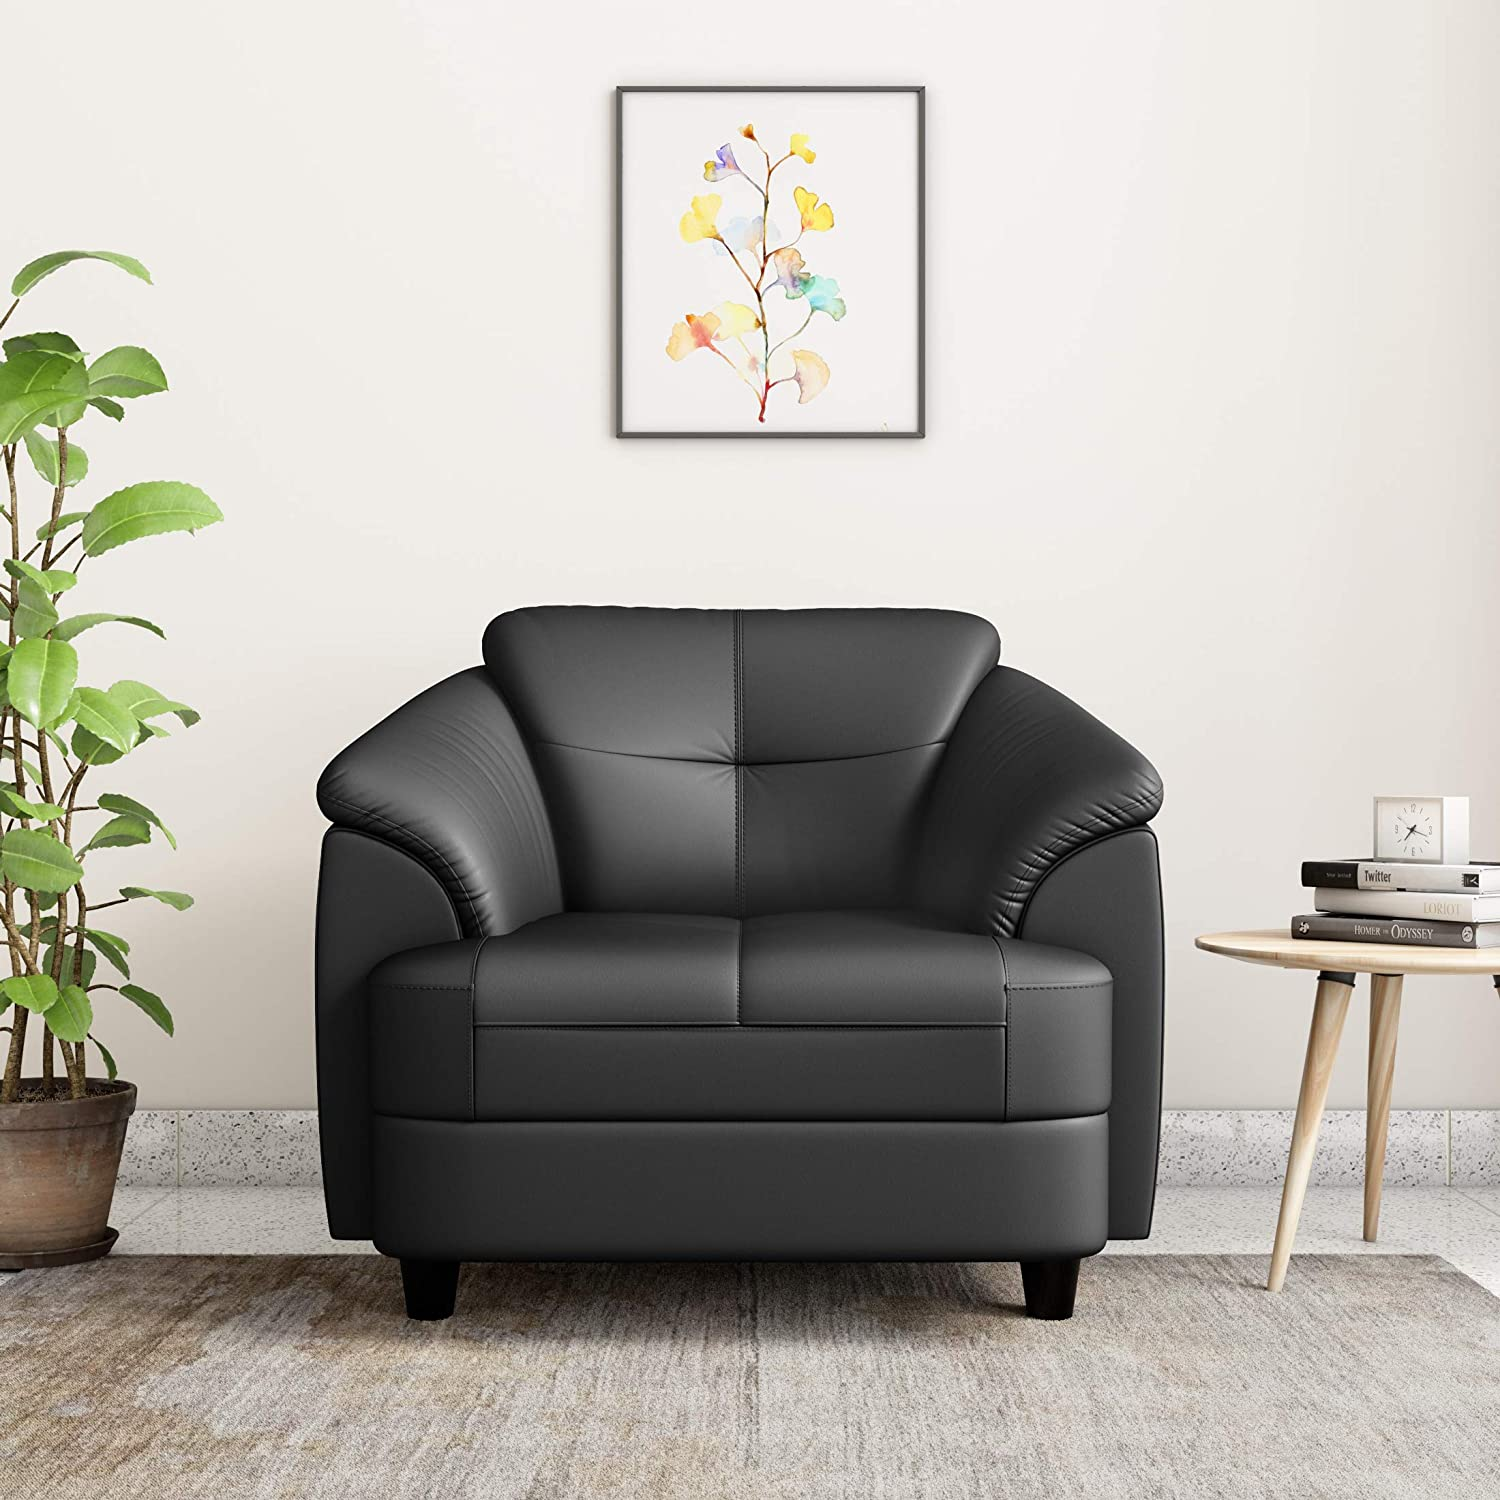 Hother  Leatherette 1 Seater Sofa (Black)